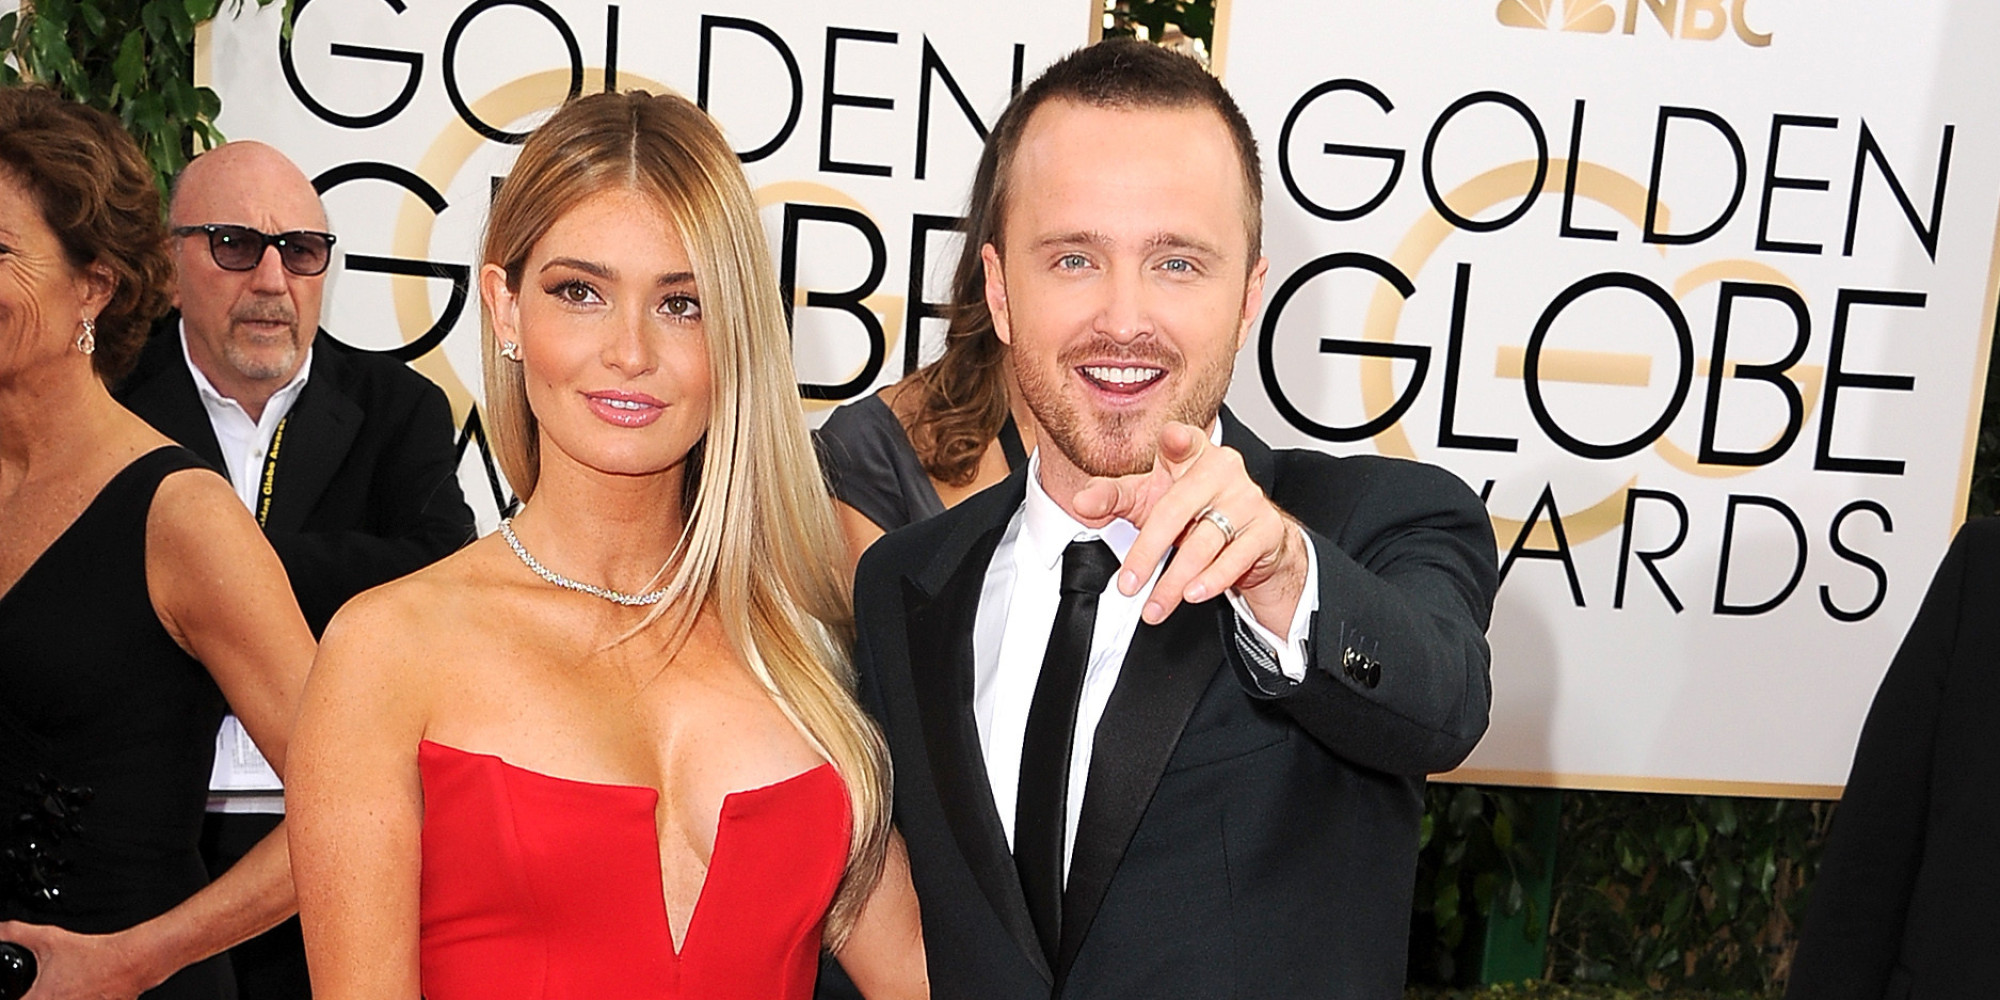 Aaron Paul And Wife Lauren Parsekian Look Gorgeous At The